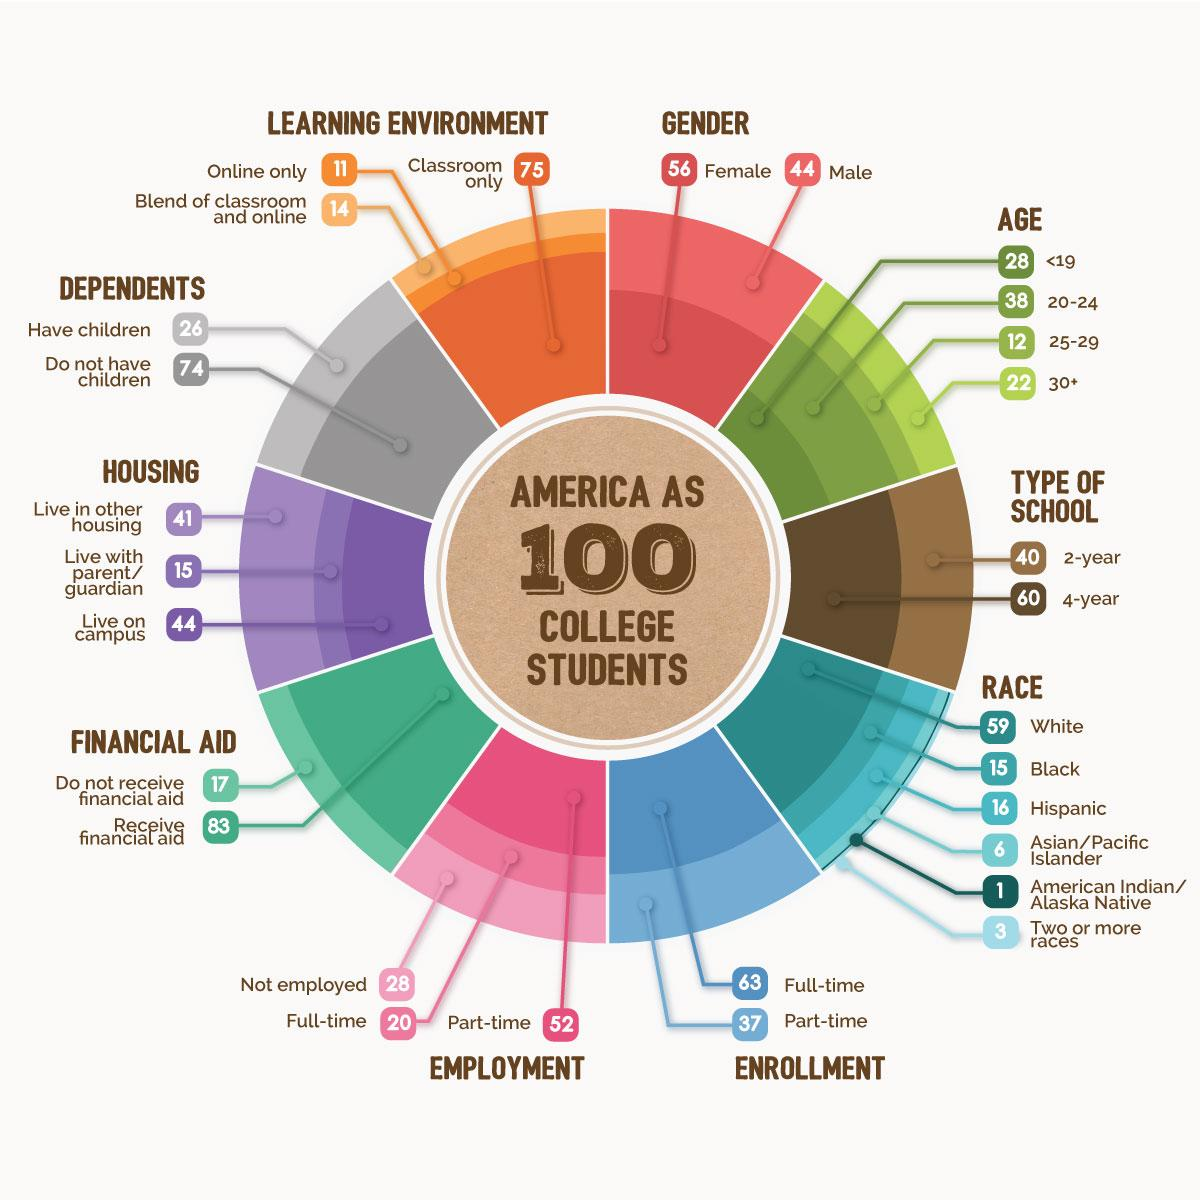 America as 100 College Students - There's no one-size-fits-all path: http://t.co/FV8uLIOCIj #SAchat http://t.co/fZkzaL0dFo